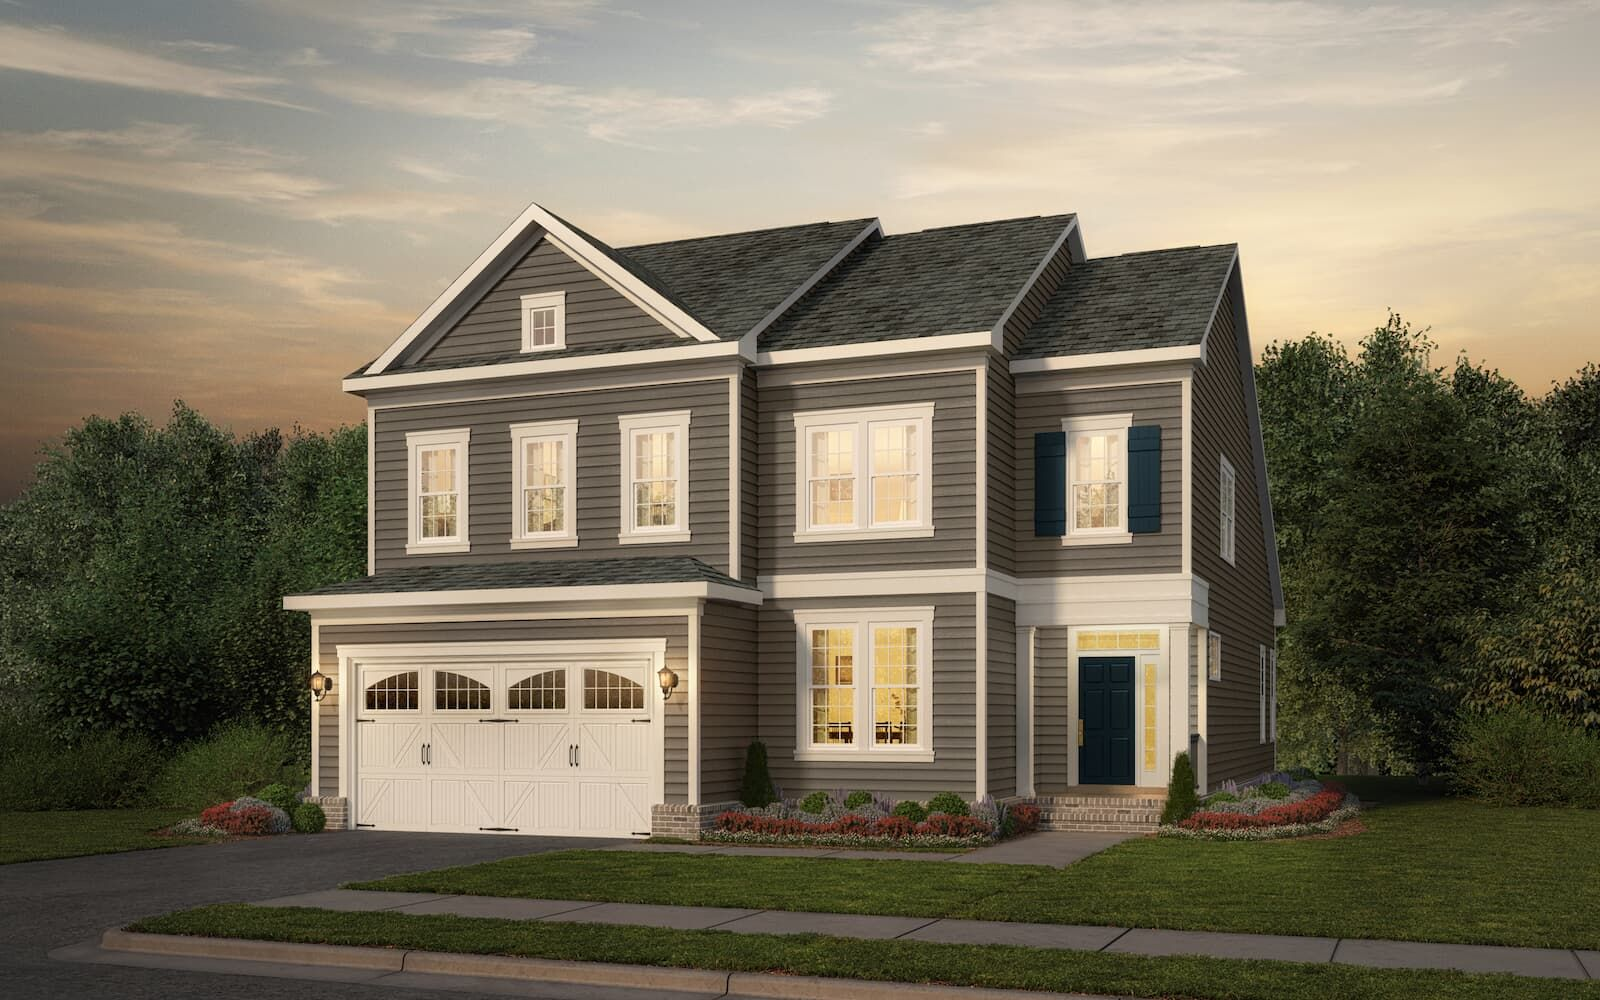 Exterior:Elevation 1 of the Cortland a home design by Brookfield Residential at West Shore Village at The Bluffs at Sleeter Lake